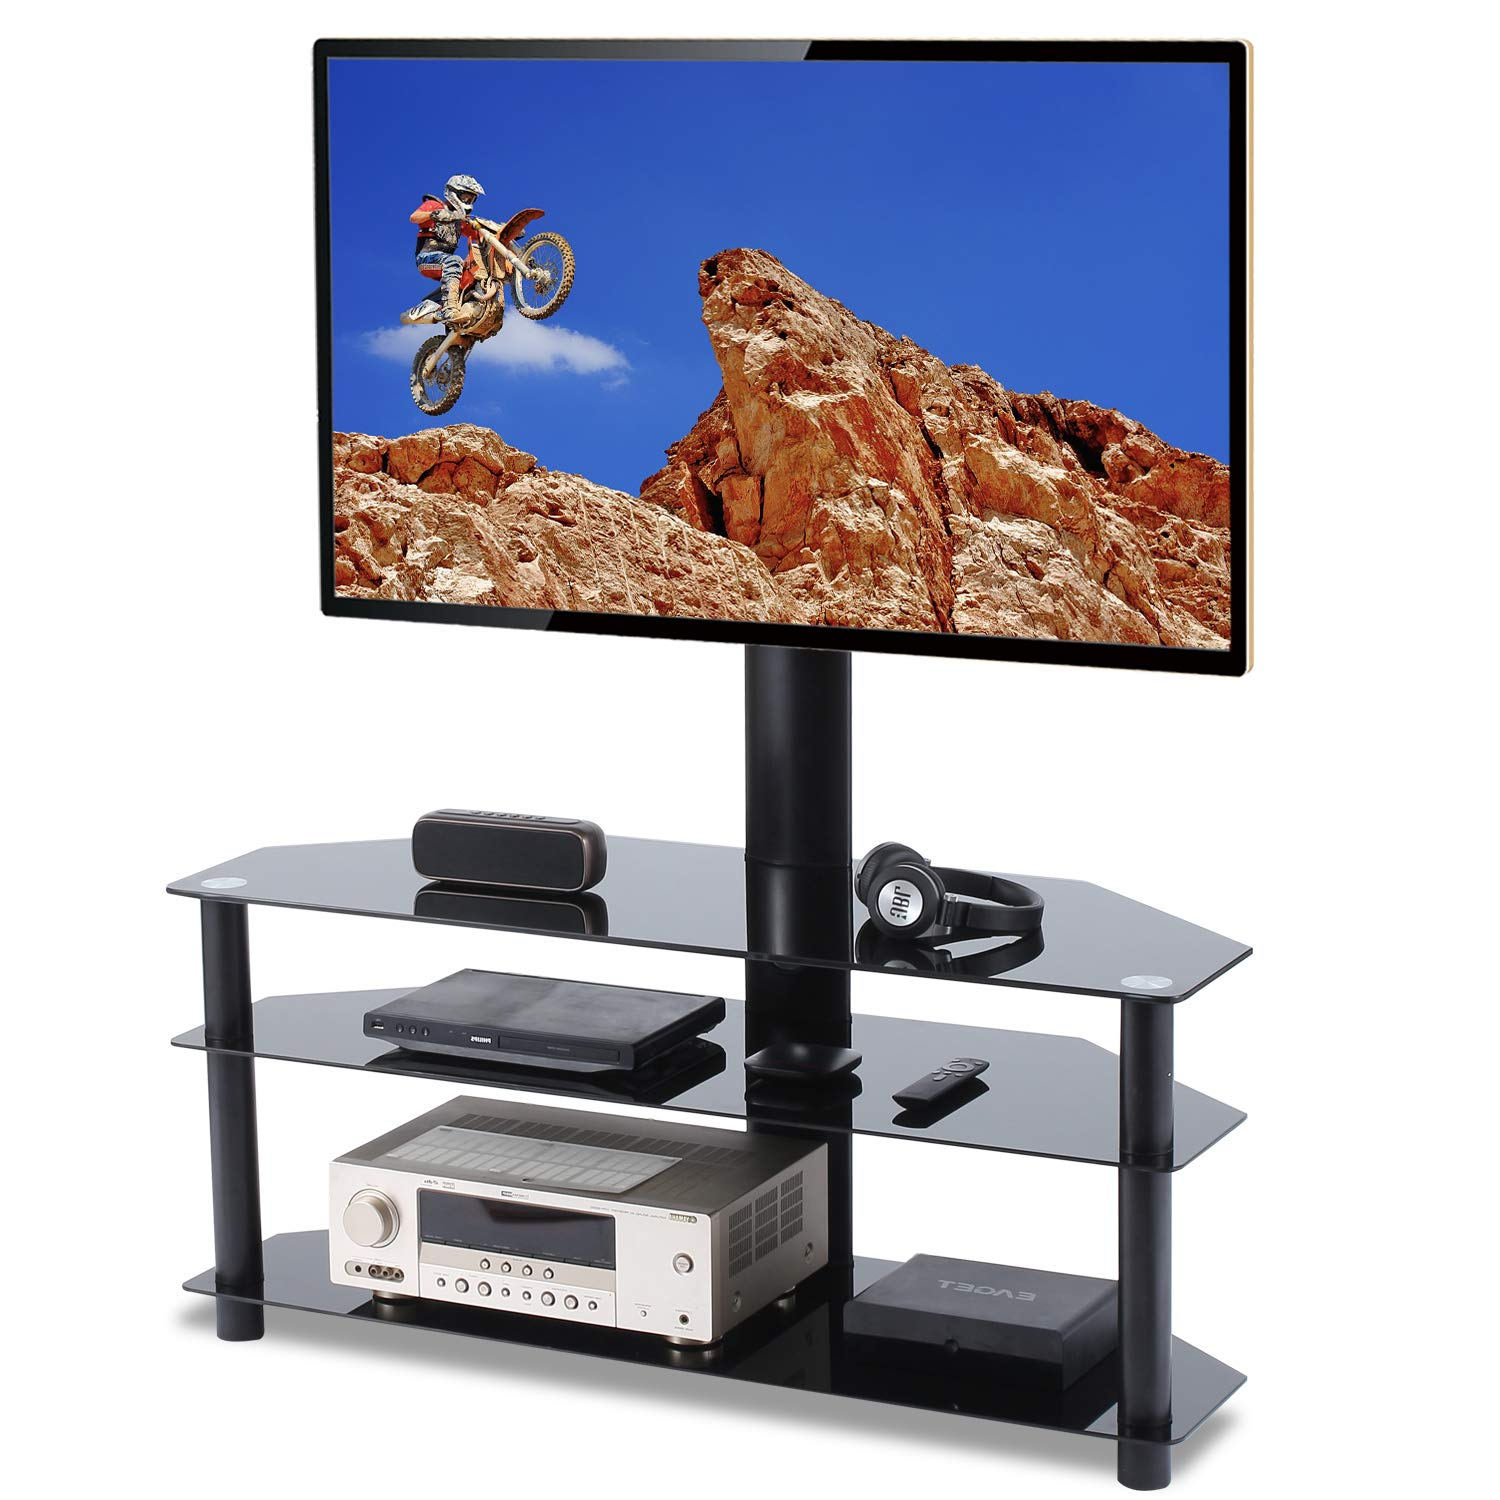 Floor TV Stand with Mount 3-in-1 Flat Panel Entertainment Stand for 32 37 42 45 50 55 60 65in Plasma LCD LED or Curved Screen 3-Tier  Tempered